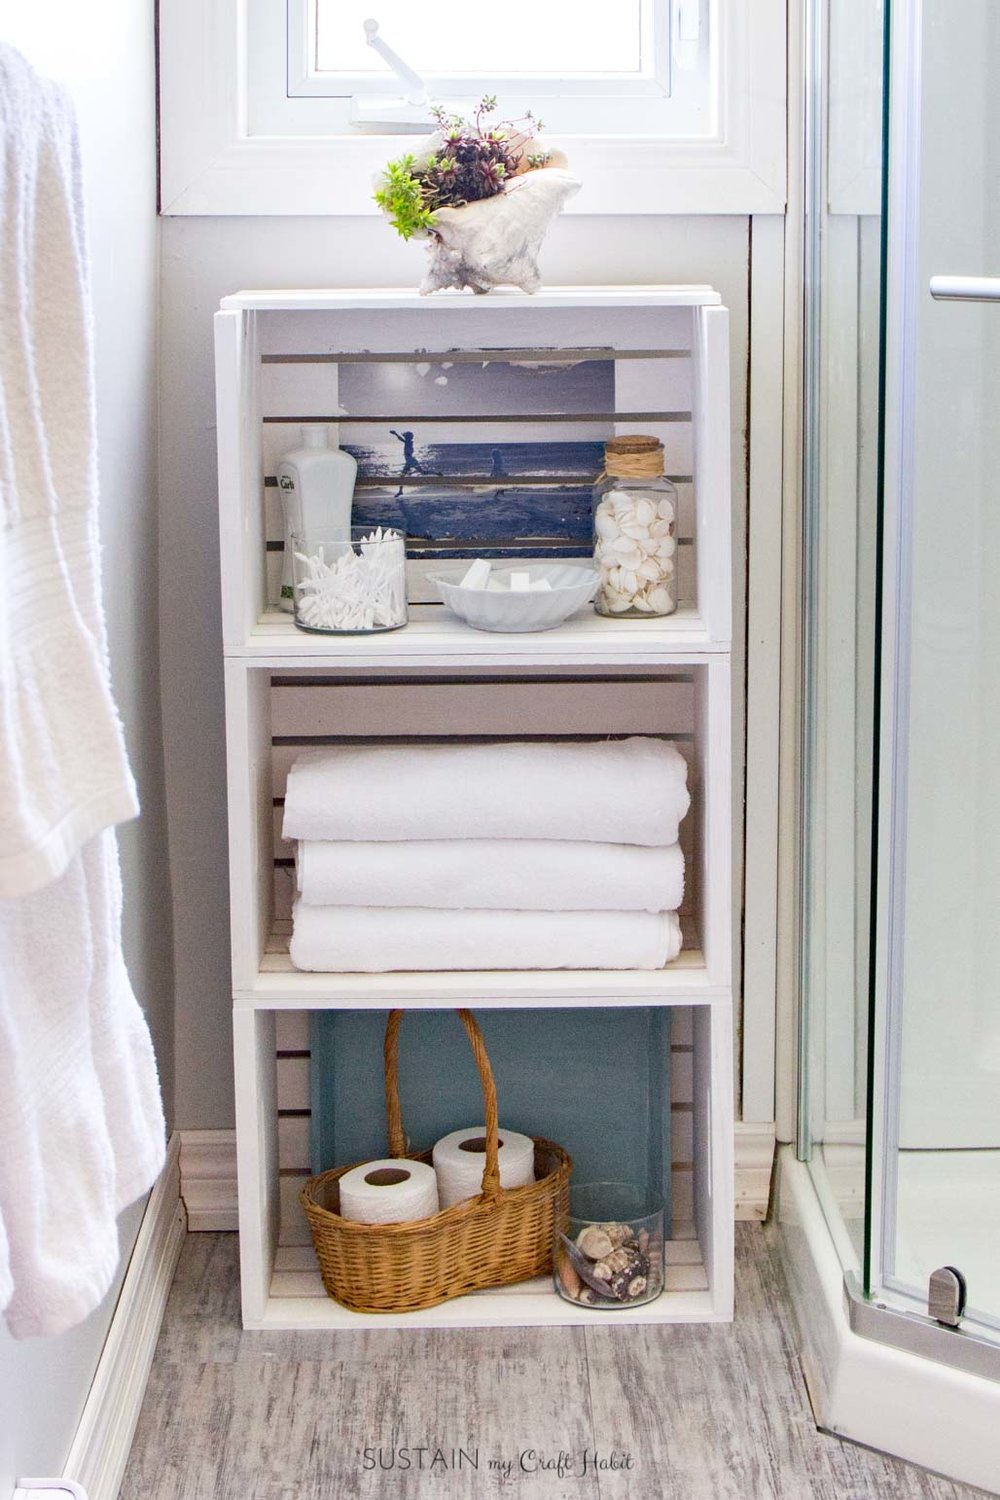 Such a great DIY storage idea for all those bathroom essentials! Just one idea in a whole beach themed bathroom makeover. Click to see the complete small bathroom remodel reveal!